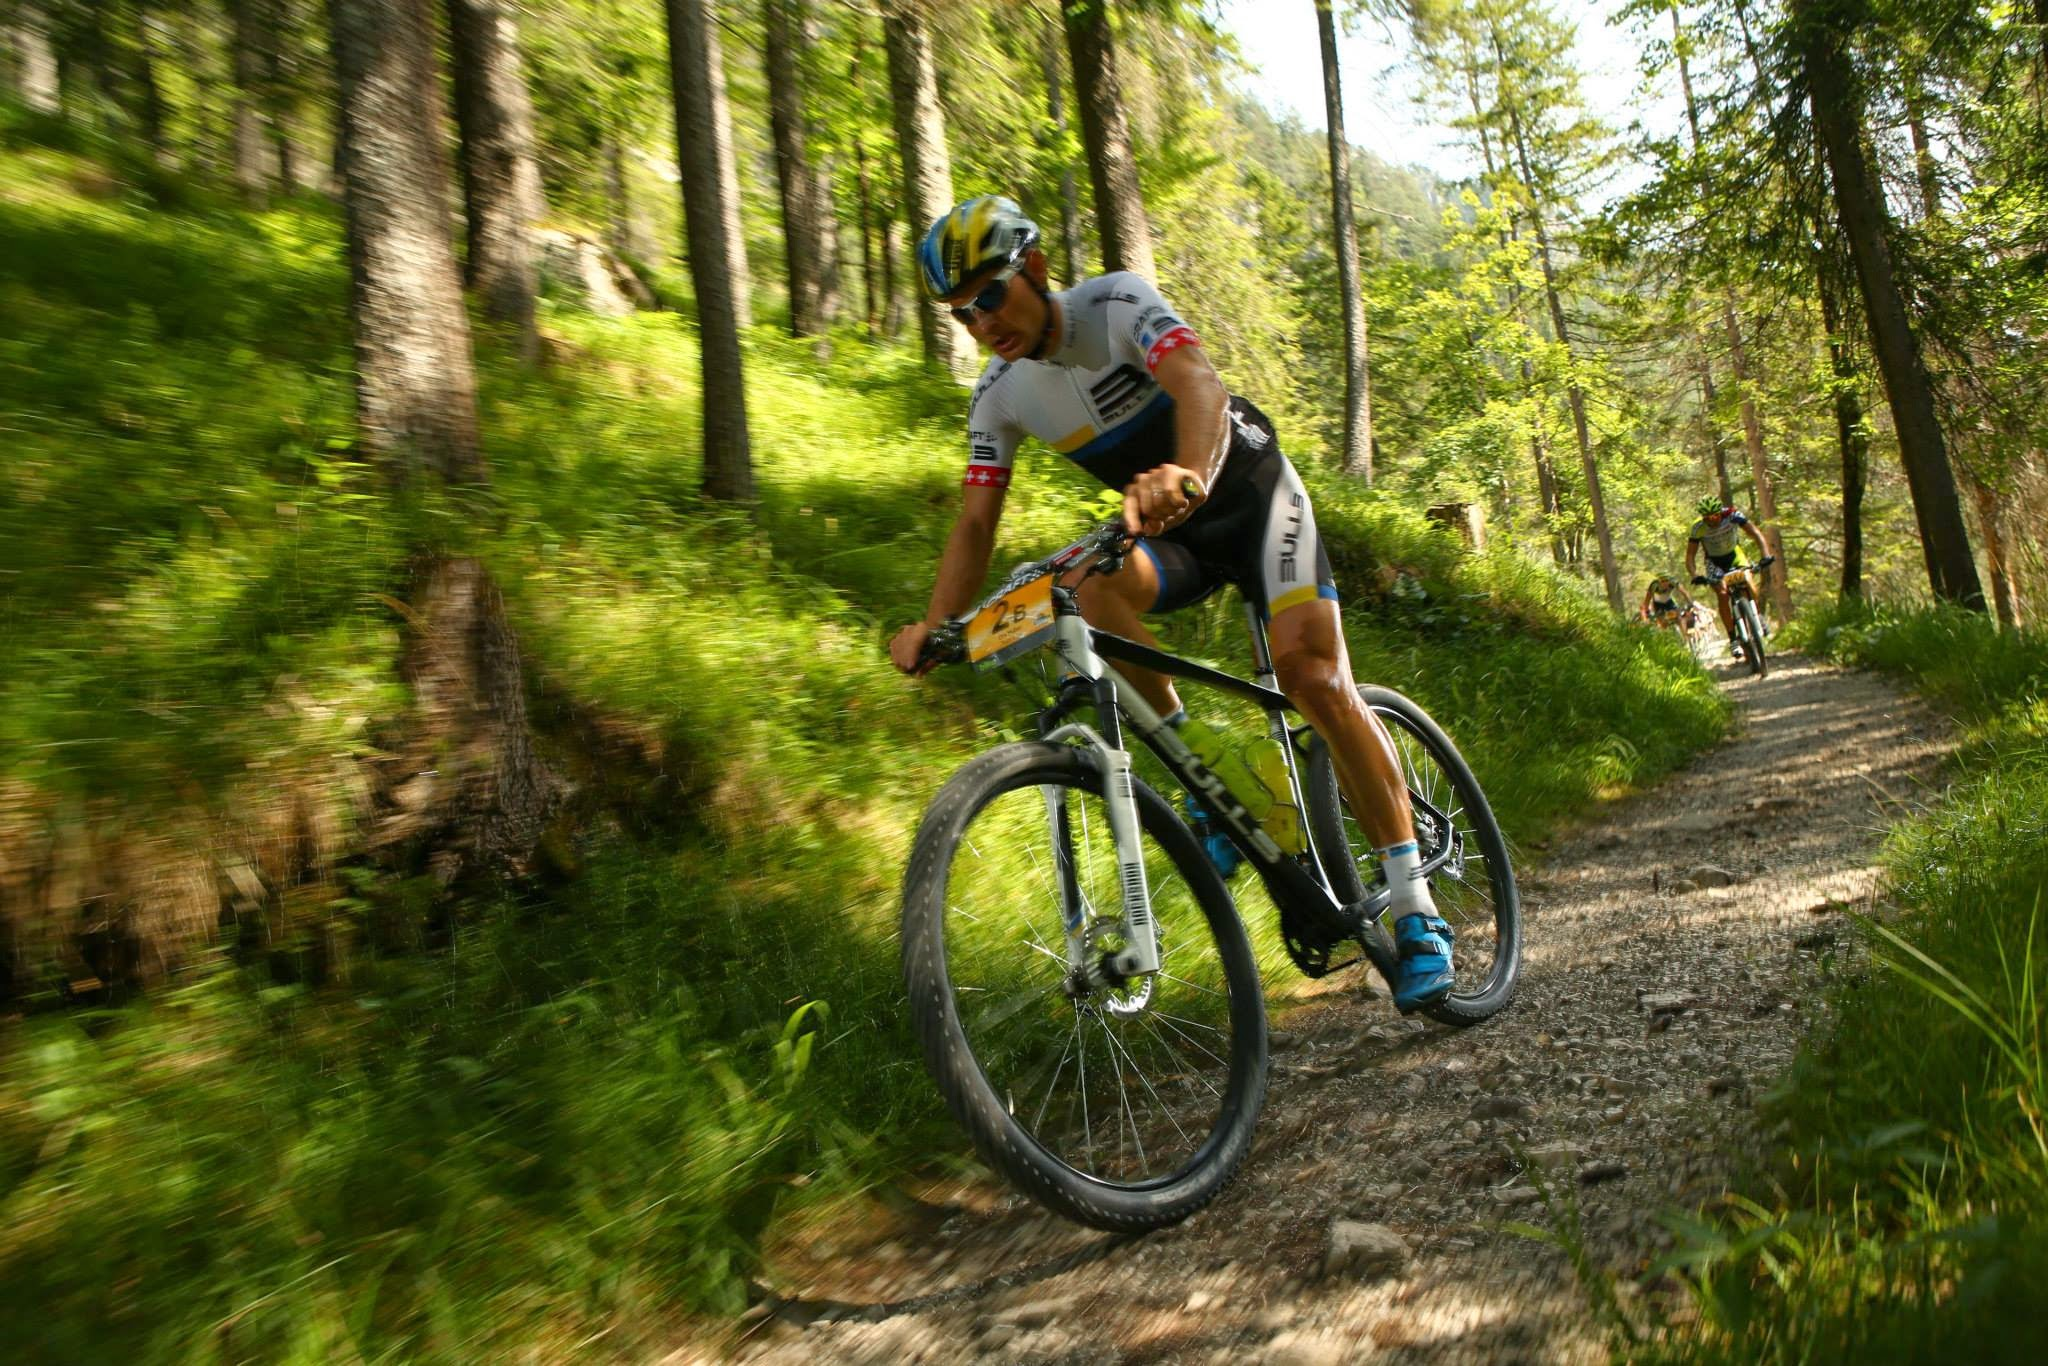 Craft Bike Transalp Fuente: plus.google.com